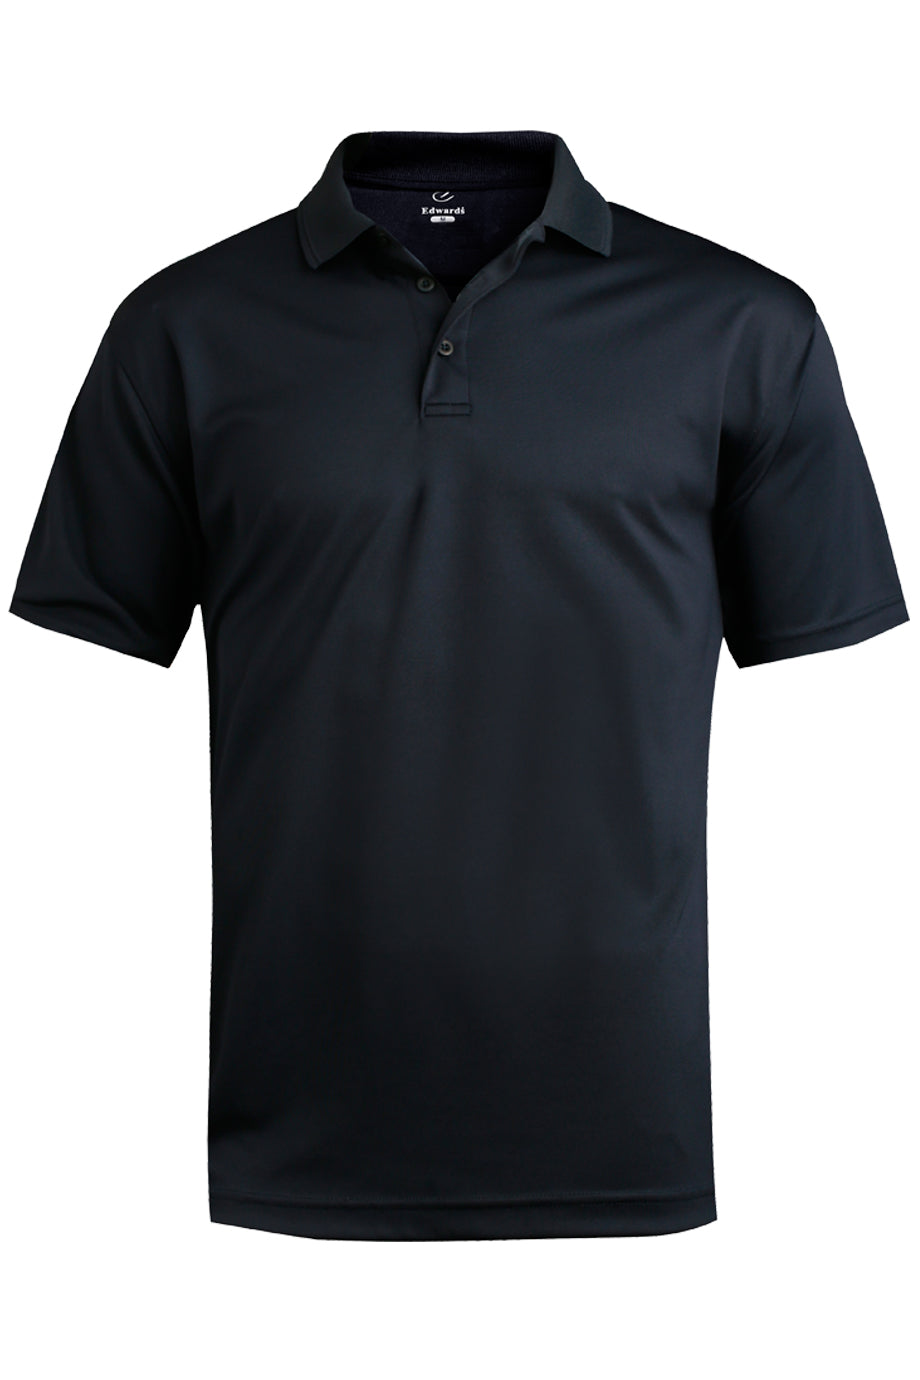 Navy Edwards Mens Performance Flat-Knit Short Sleeve Polo